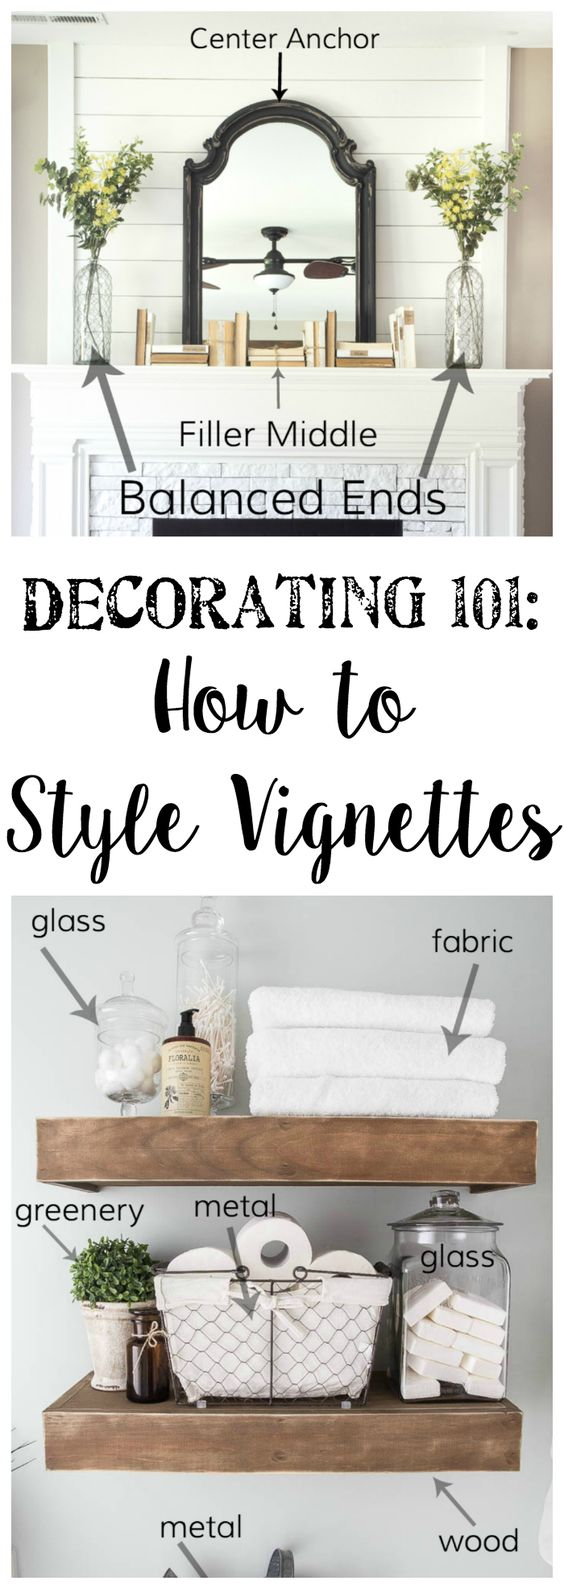 Decorating 101 - Vignette Styling - Bless